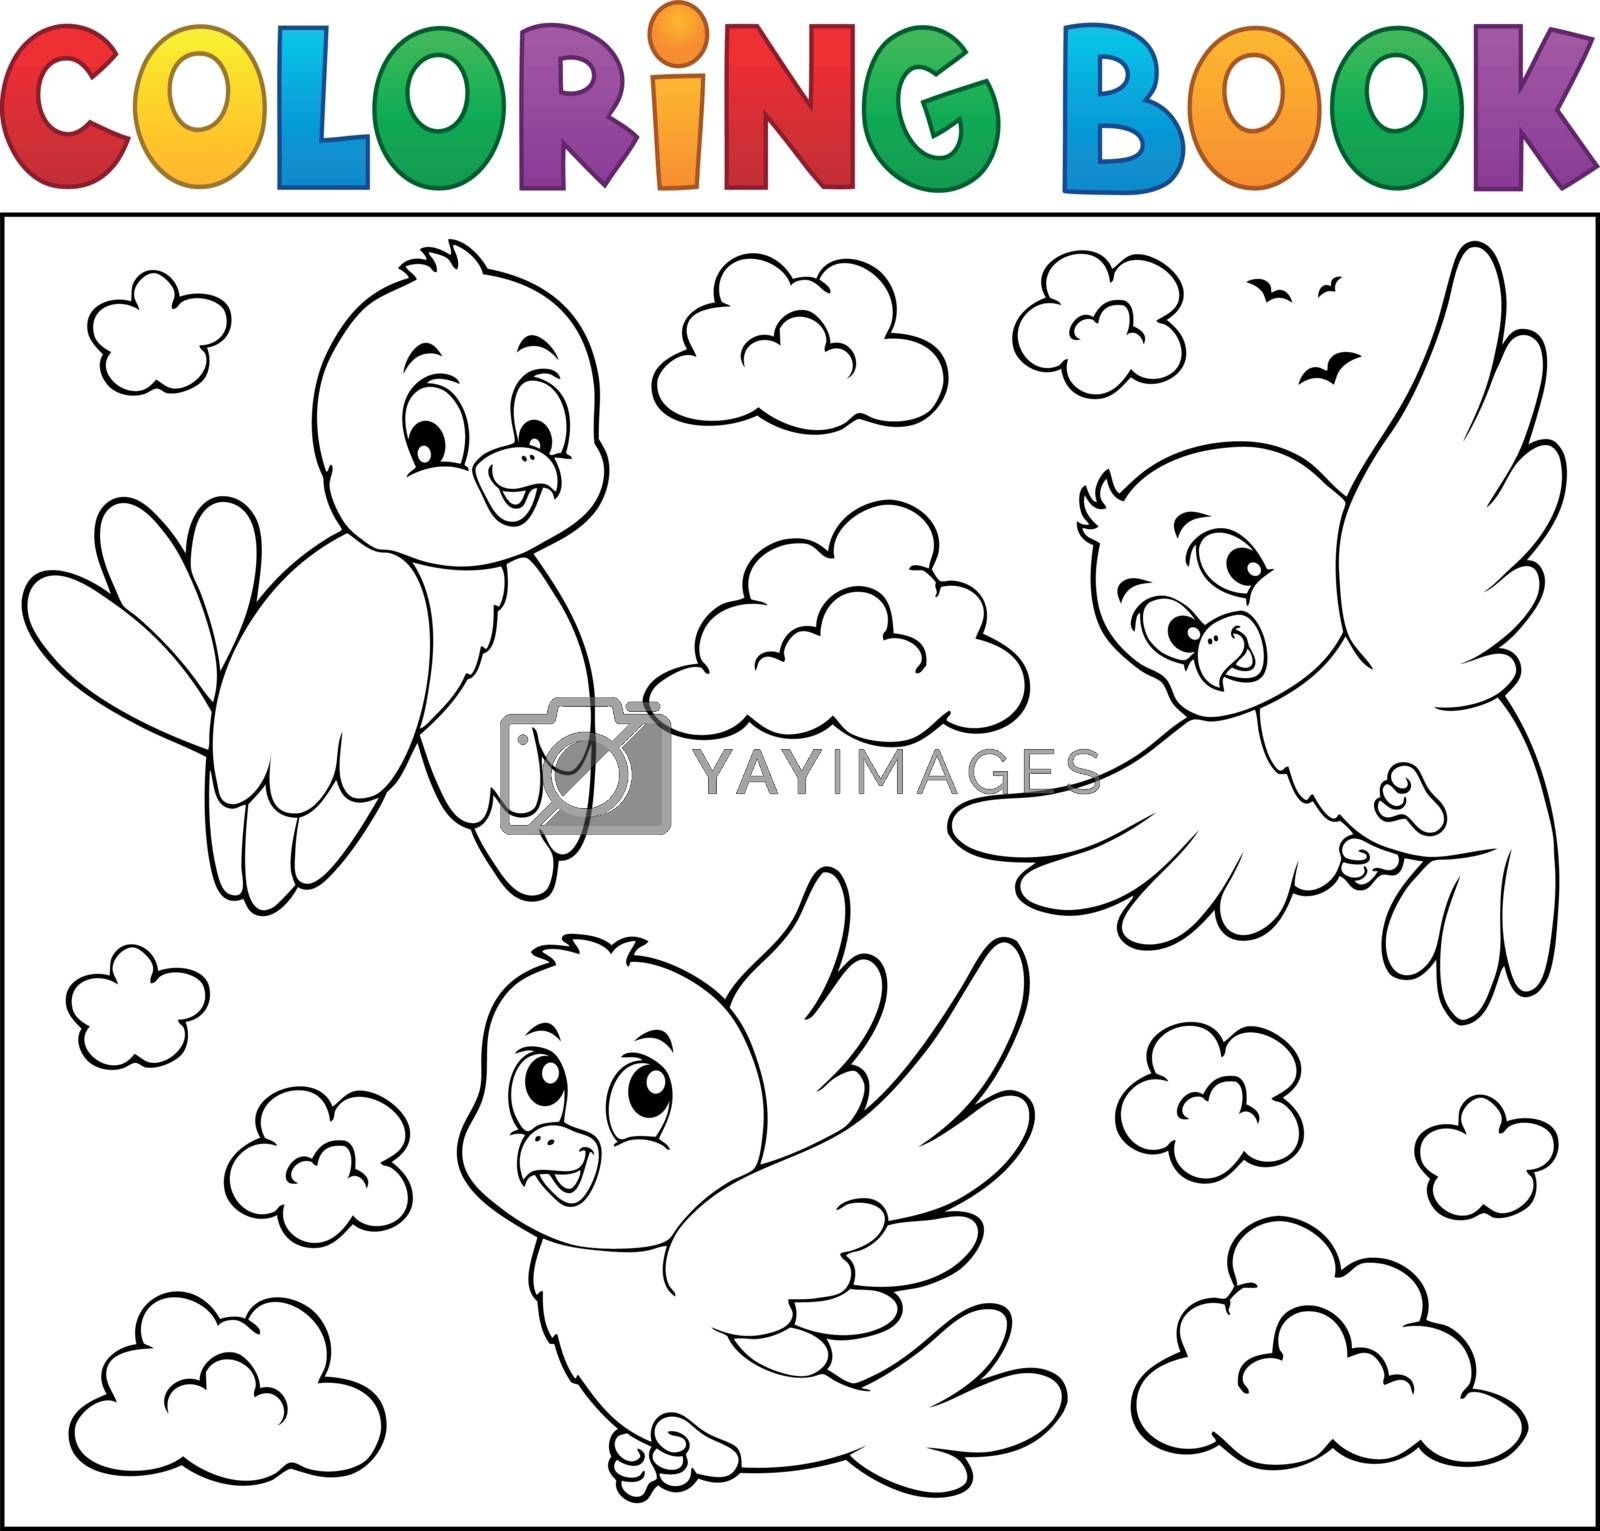 Coloring book happy birds theme 2 - eps10 vector illustration.